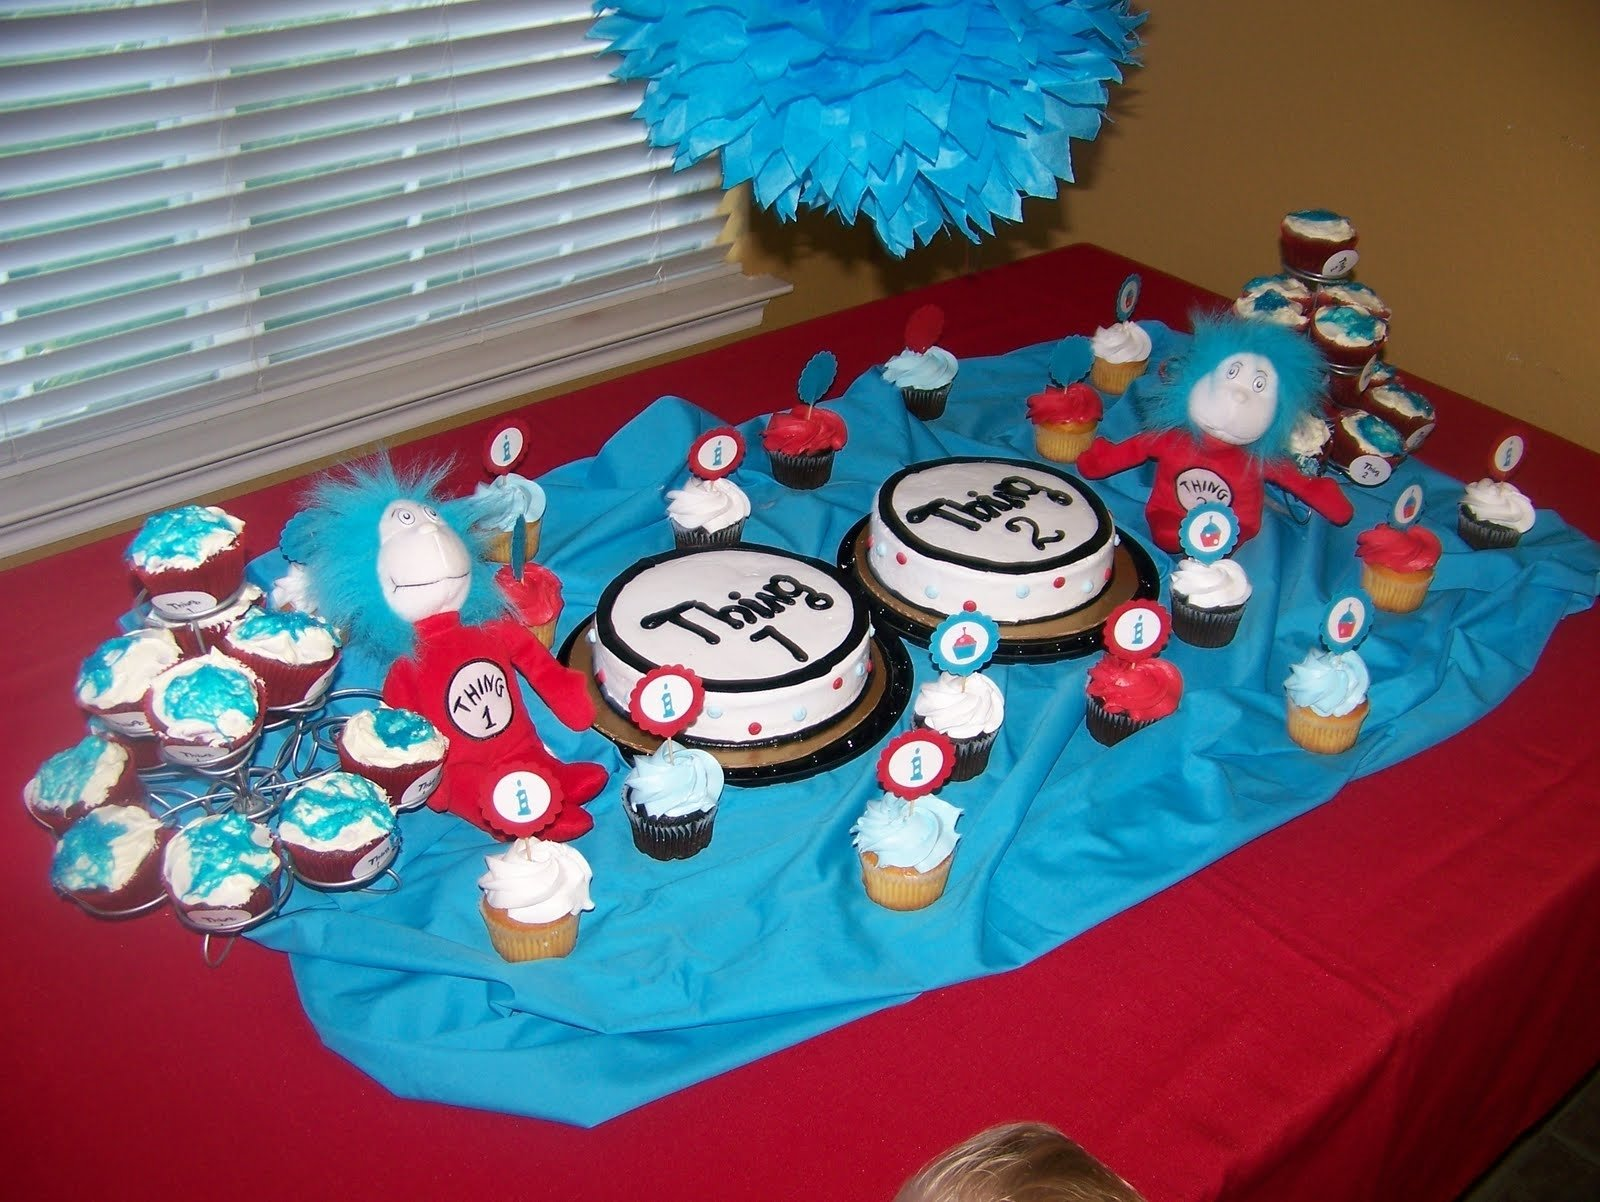 10 Awesome Thing 1 And Thing 2 Cake Ideas dr seuss thing 1 thing 2 birthday party giggles galore 2020